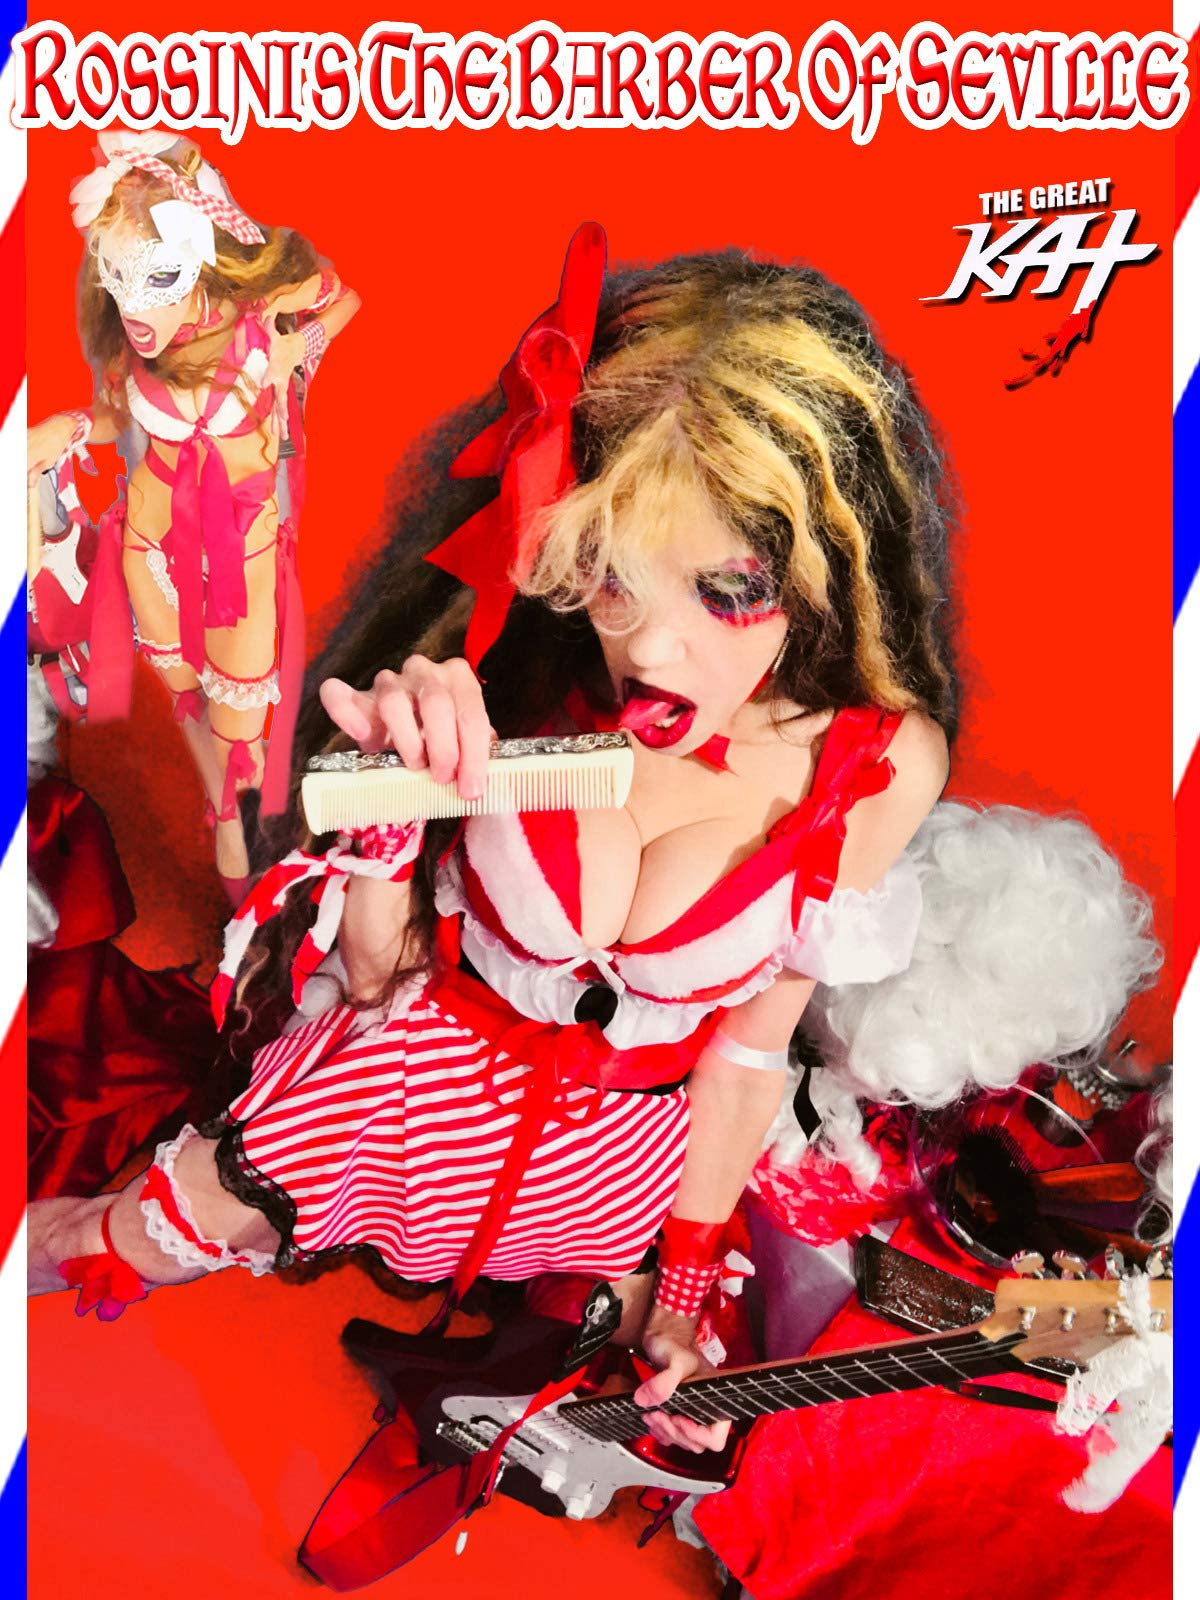 The Great Kat - Rossini's The Barber Of Seville on Amazon Prime Instant Video UK